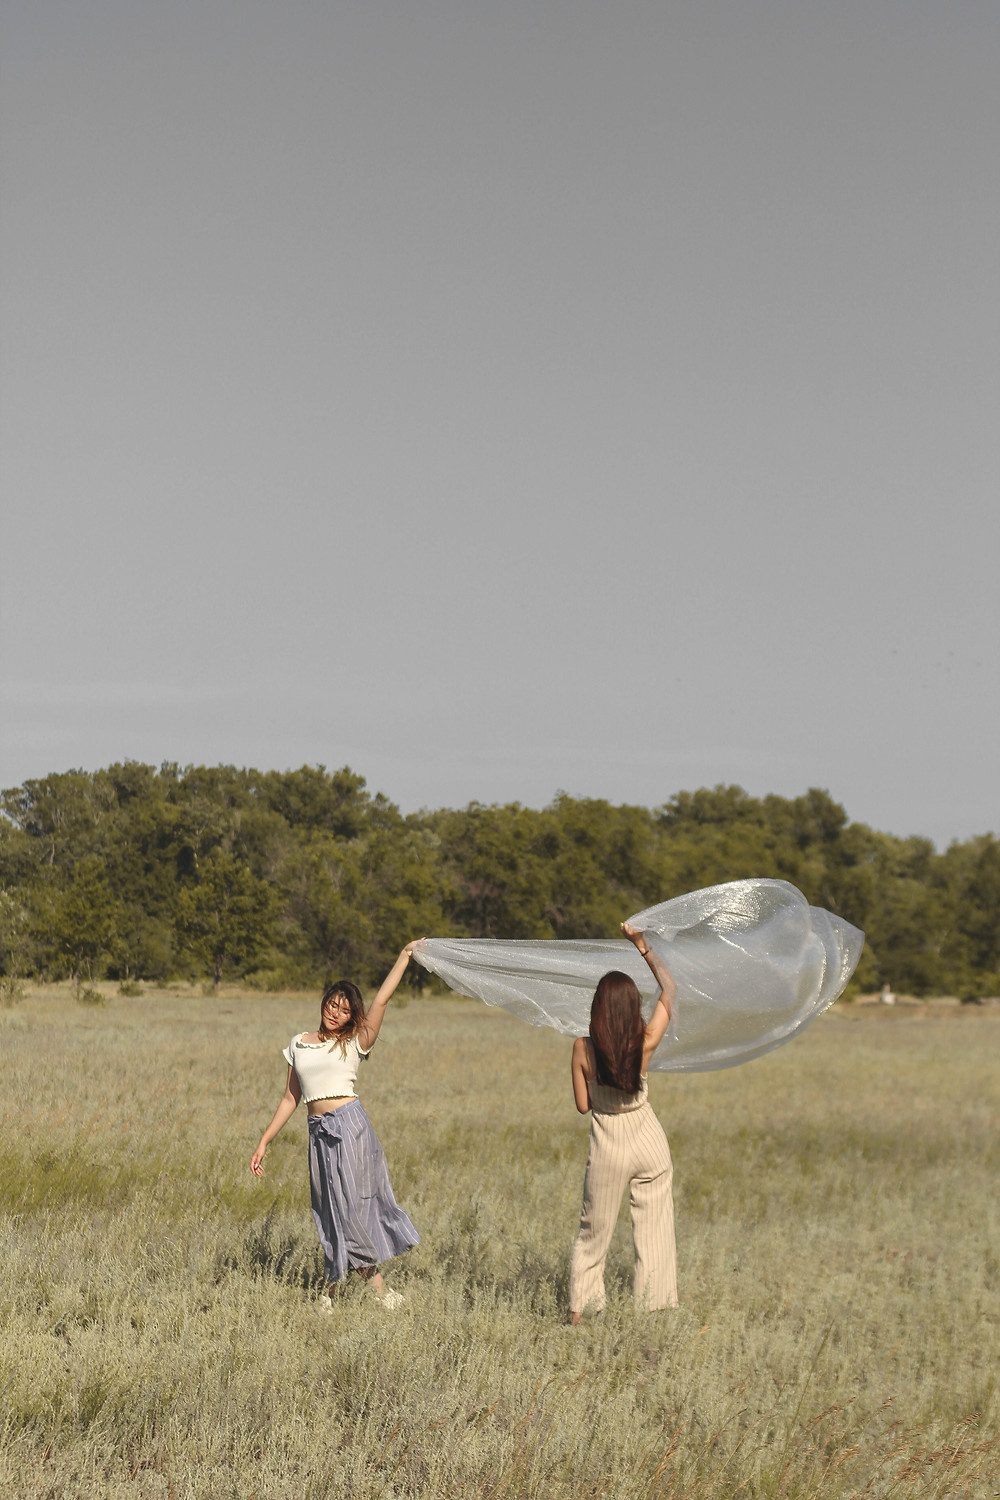 Two women with plastic sheet